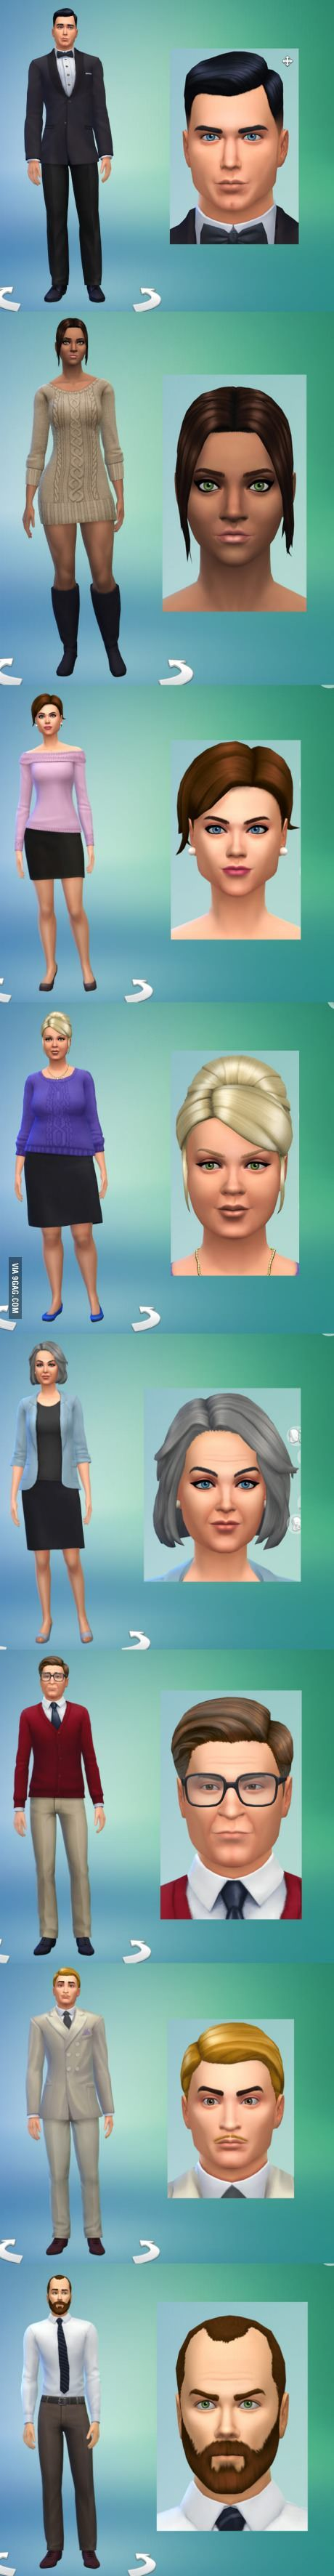 Archer cast done in The Sims 4 character creator